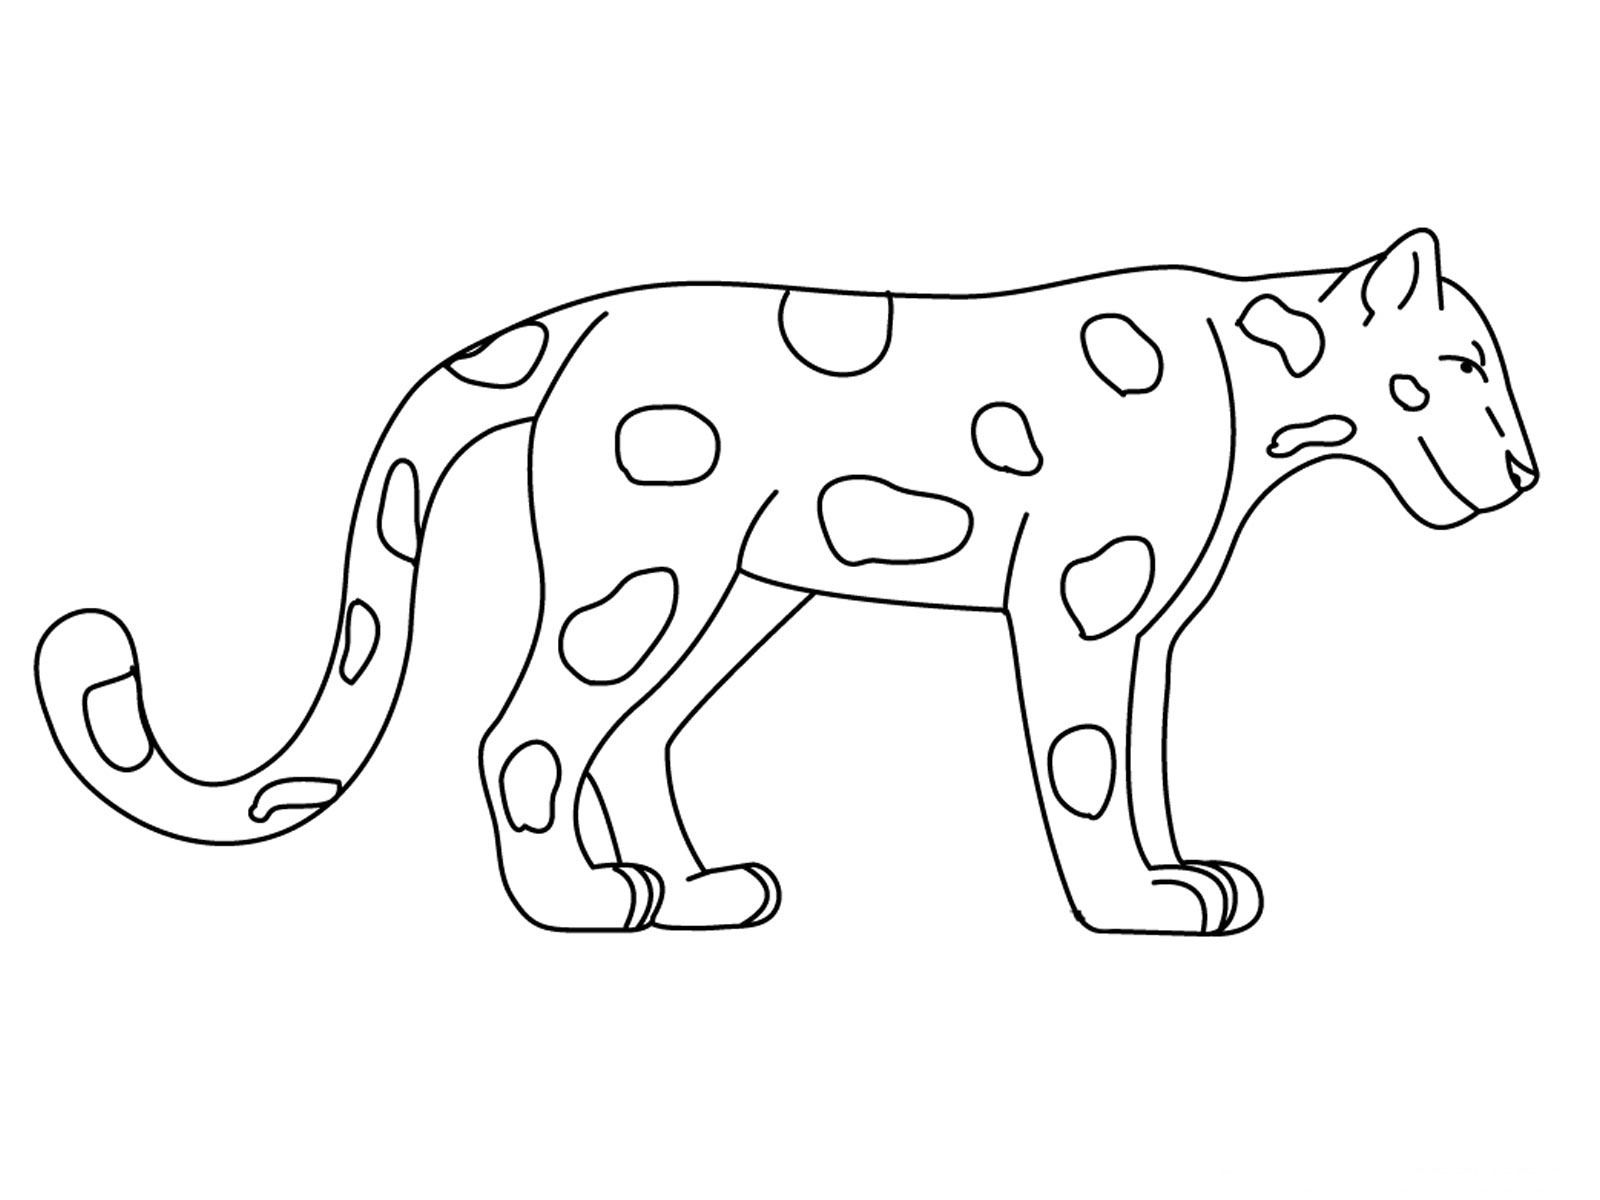 Rainforest Animal Coloring Sheets | Jaguar Animal Coloring Pages ...